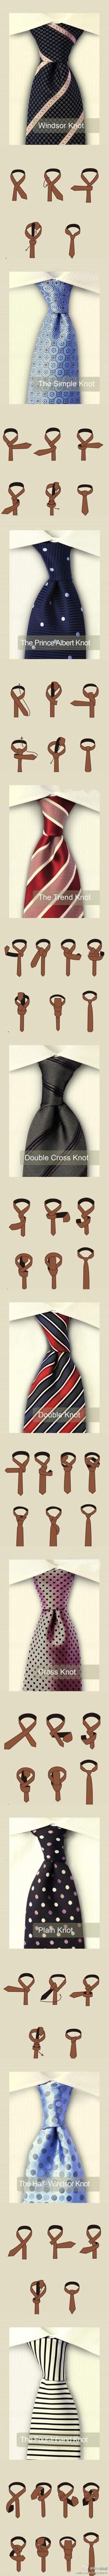 this is knot your average tie guide